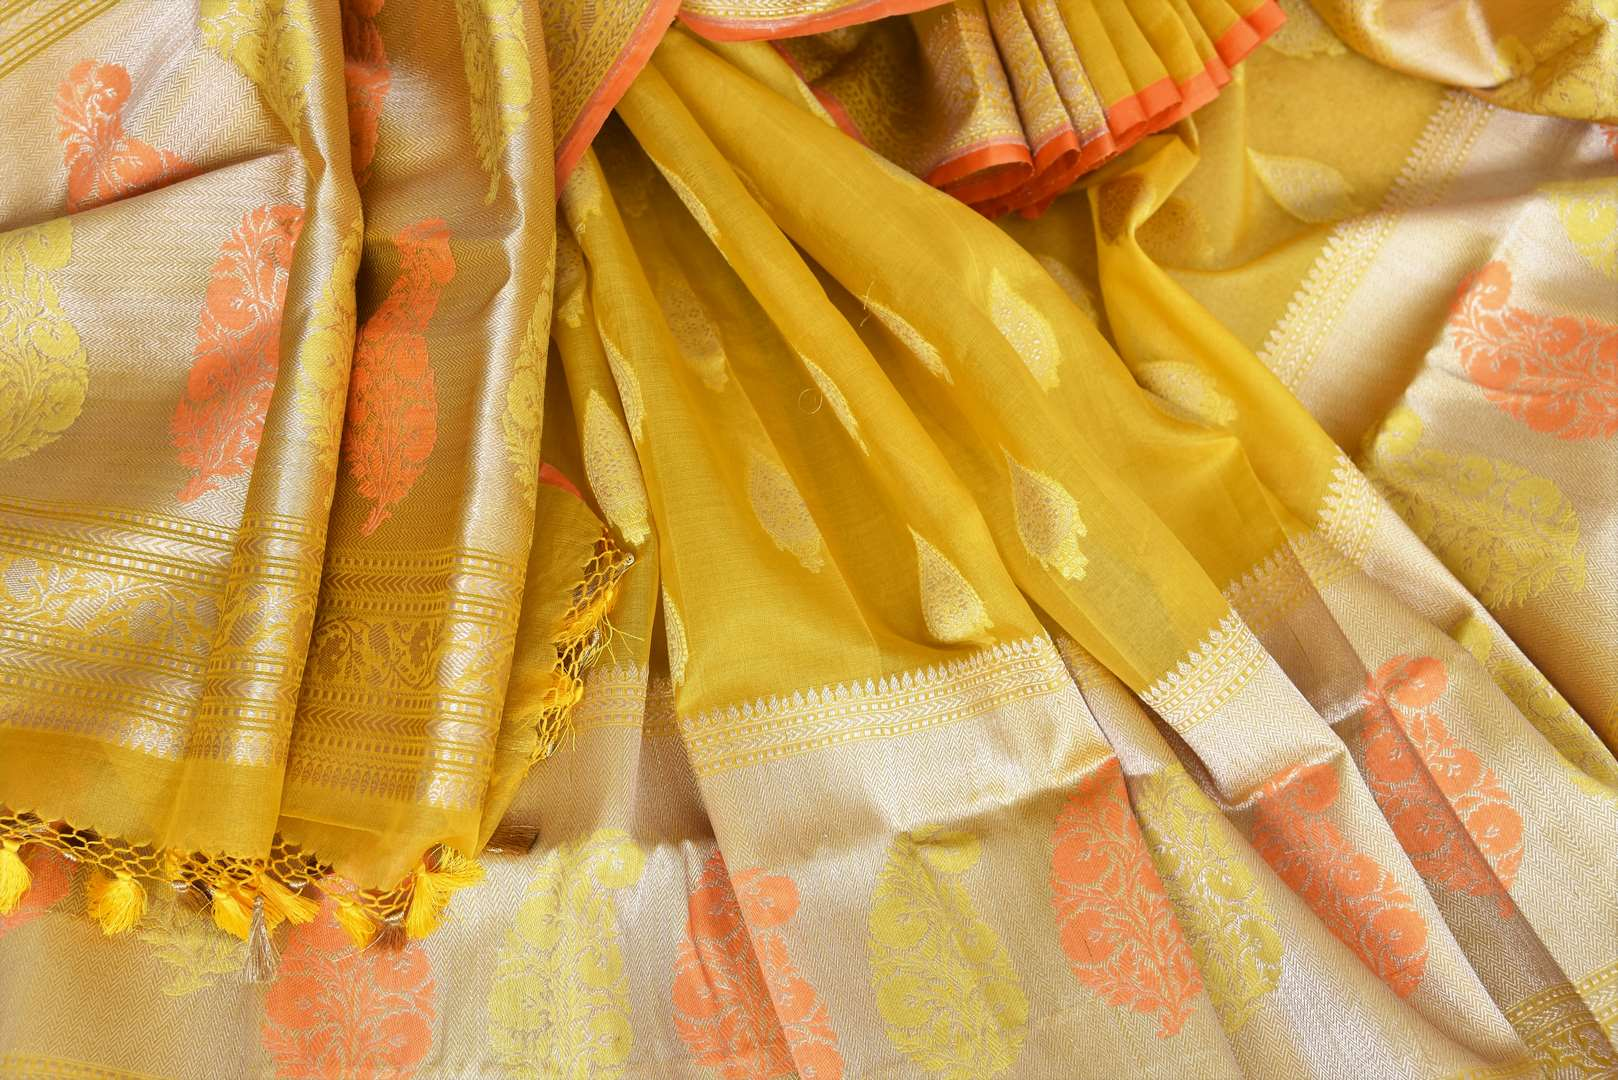 Buy mustard yellow organza Banarasi saree online in USA with zari buta. The saree is a rich drape for weddings and special occasions. If you are looking for Indian designer silk sarees, Banarasi sarees in USA, then Pure Elegance clothing store is your one-stop solution, shop now.-details